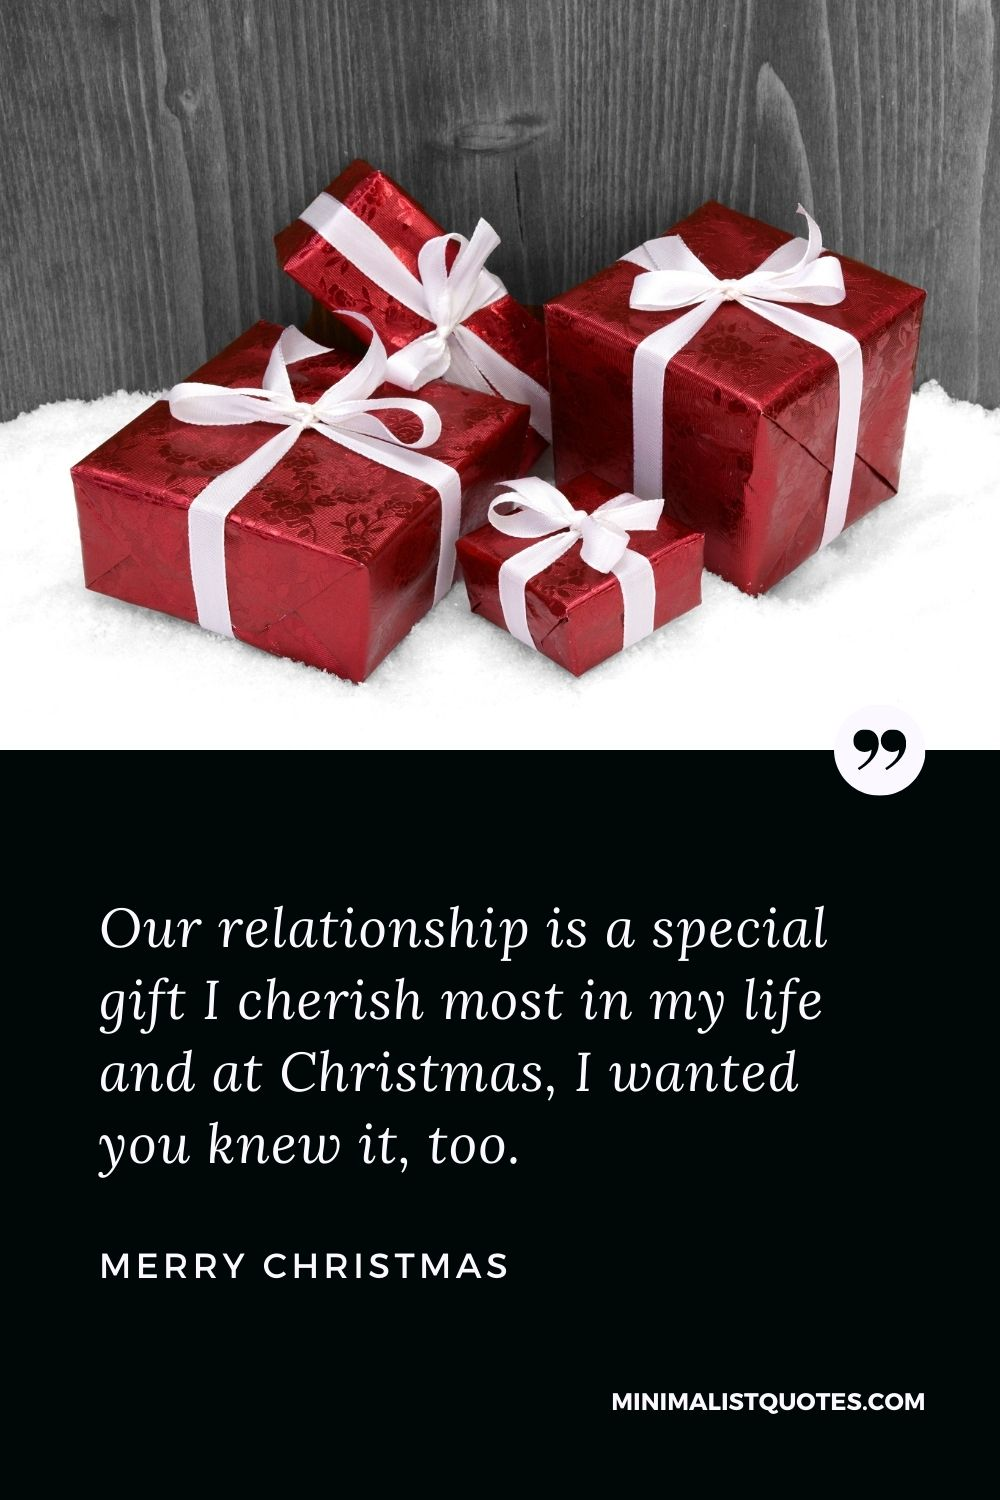 Merry Christmas Wish - Our relationship isa special gift I cherish most in my life and at Christmas, I wanted you knew it, too.